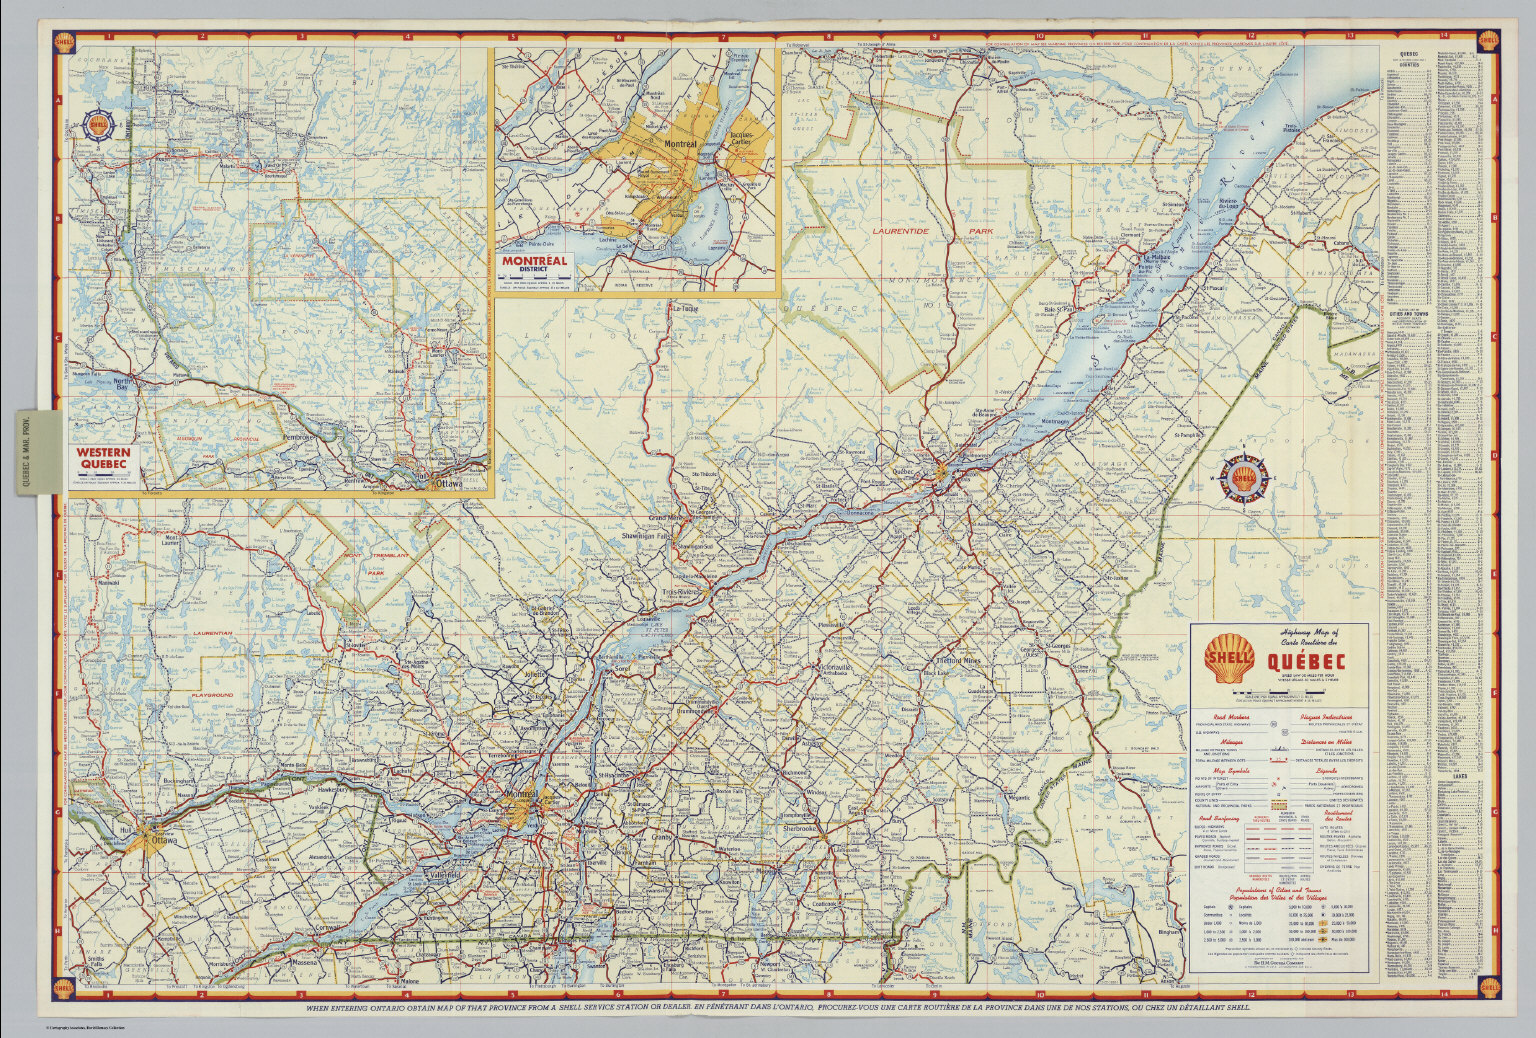 shell highway map of quebec